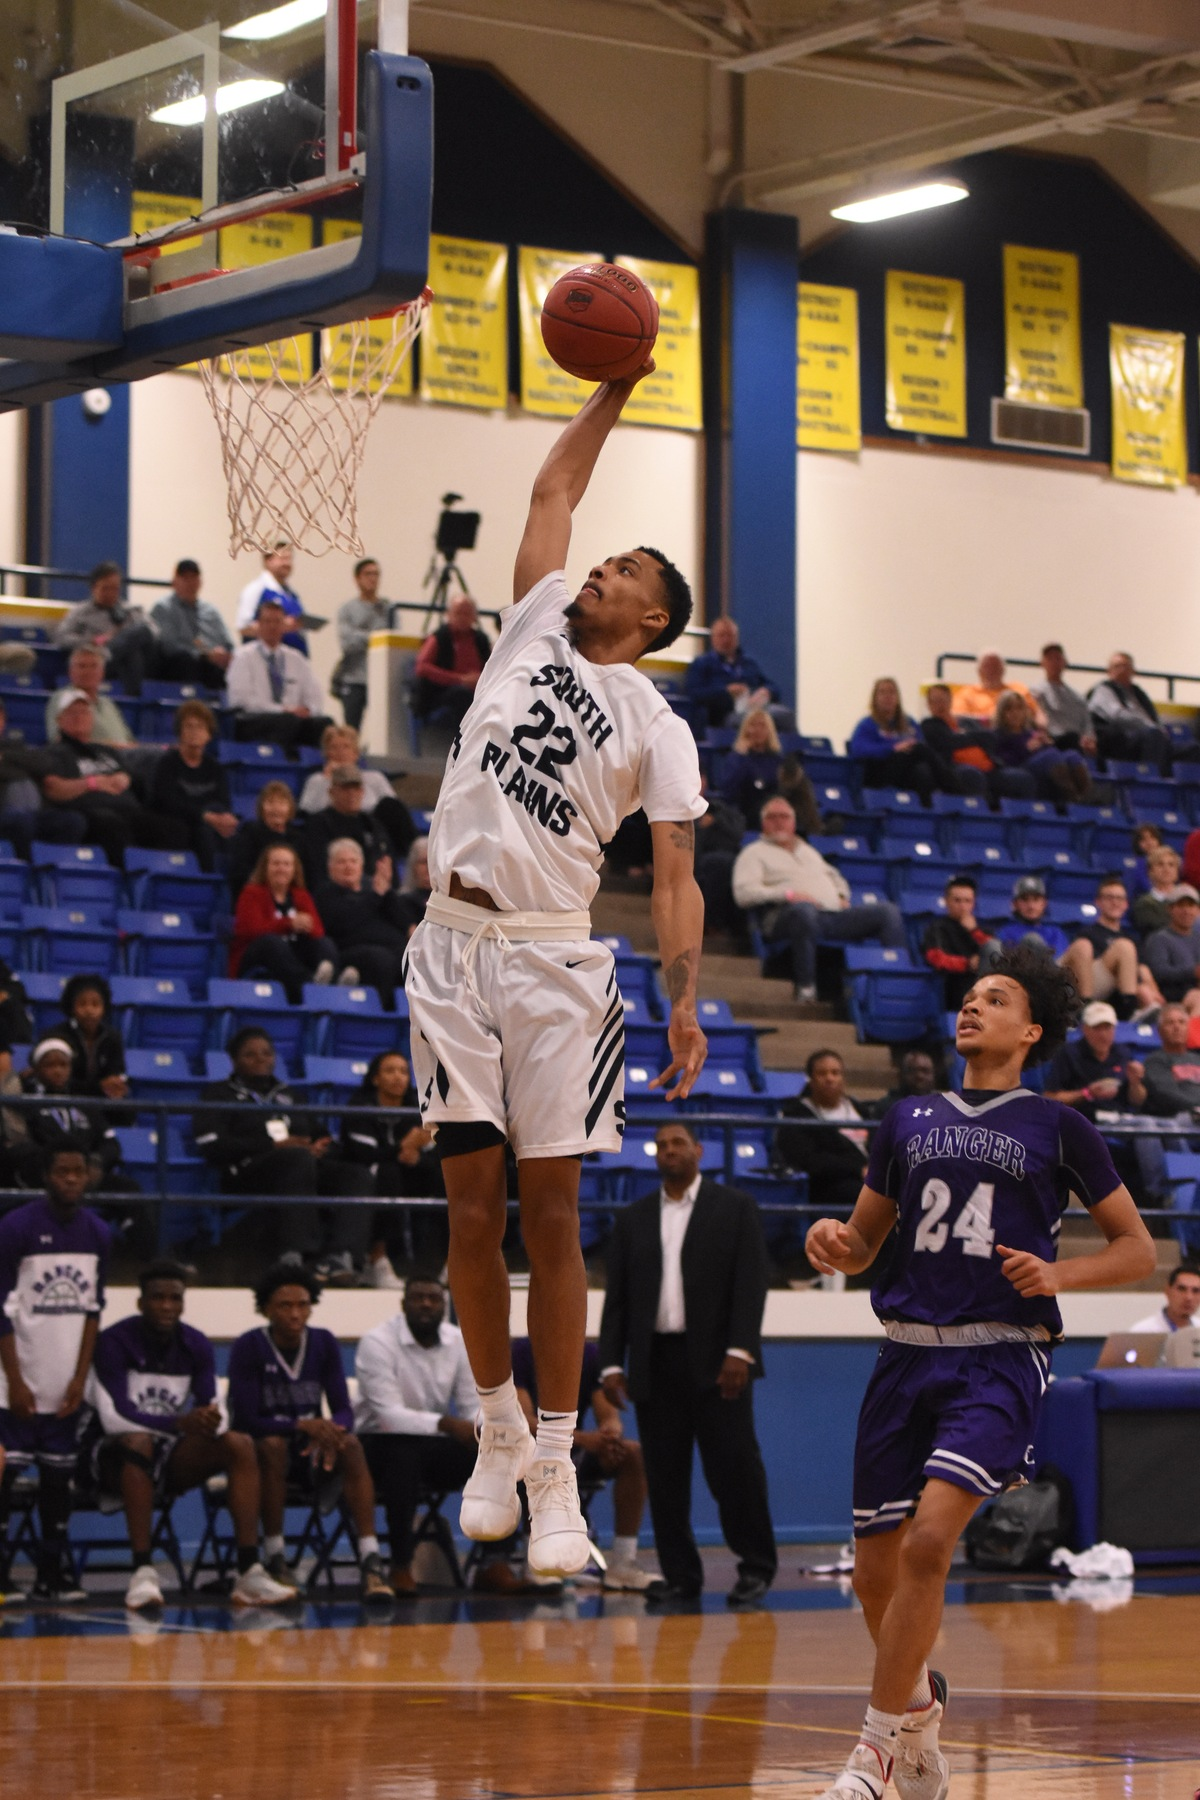 Texans dismantle Ranger 89-75 Wednesday in opening round of Region V Tournament in Wolfforth